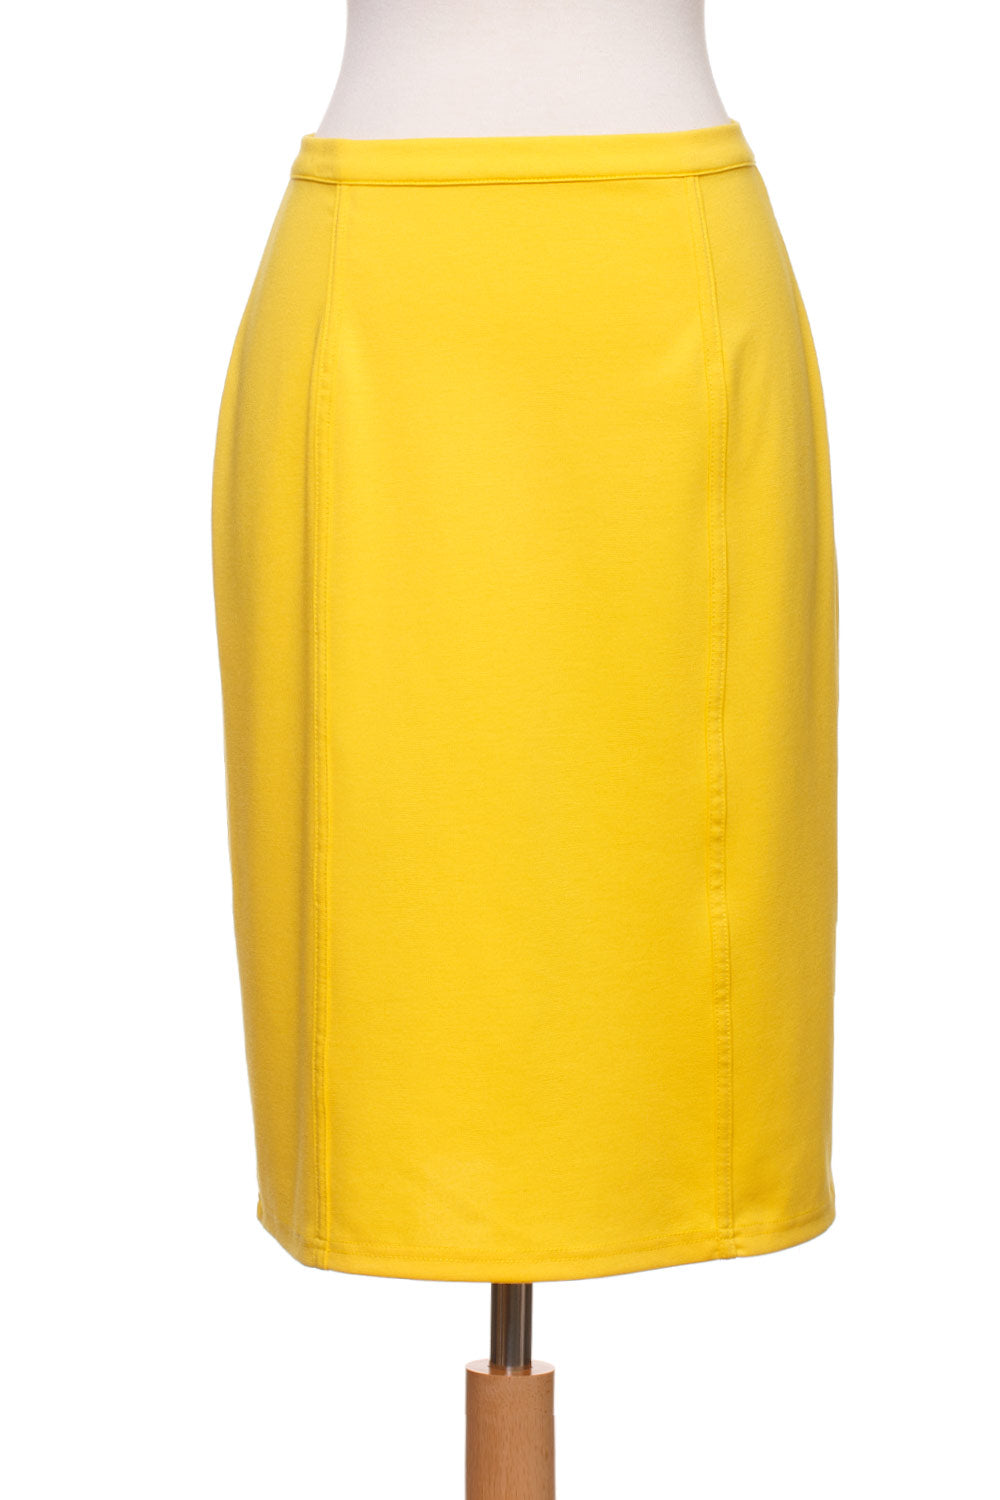 Type 4 Maize Skirt